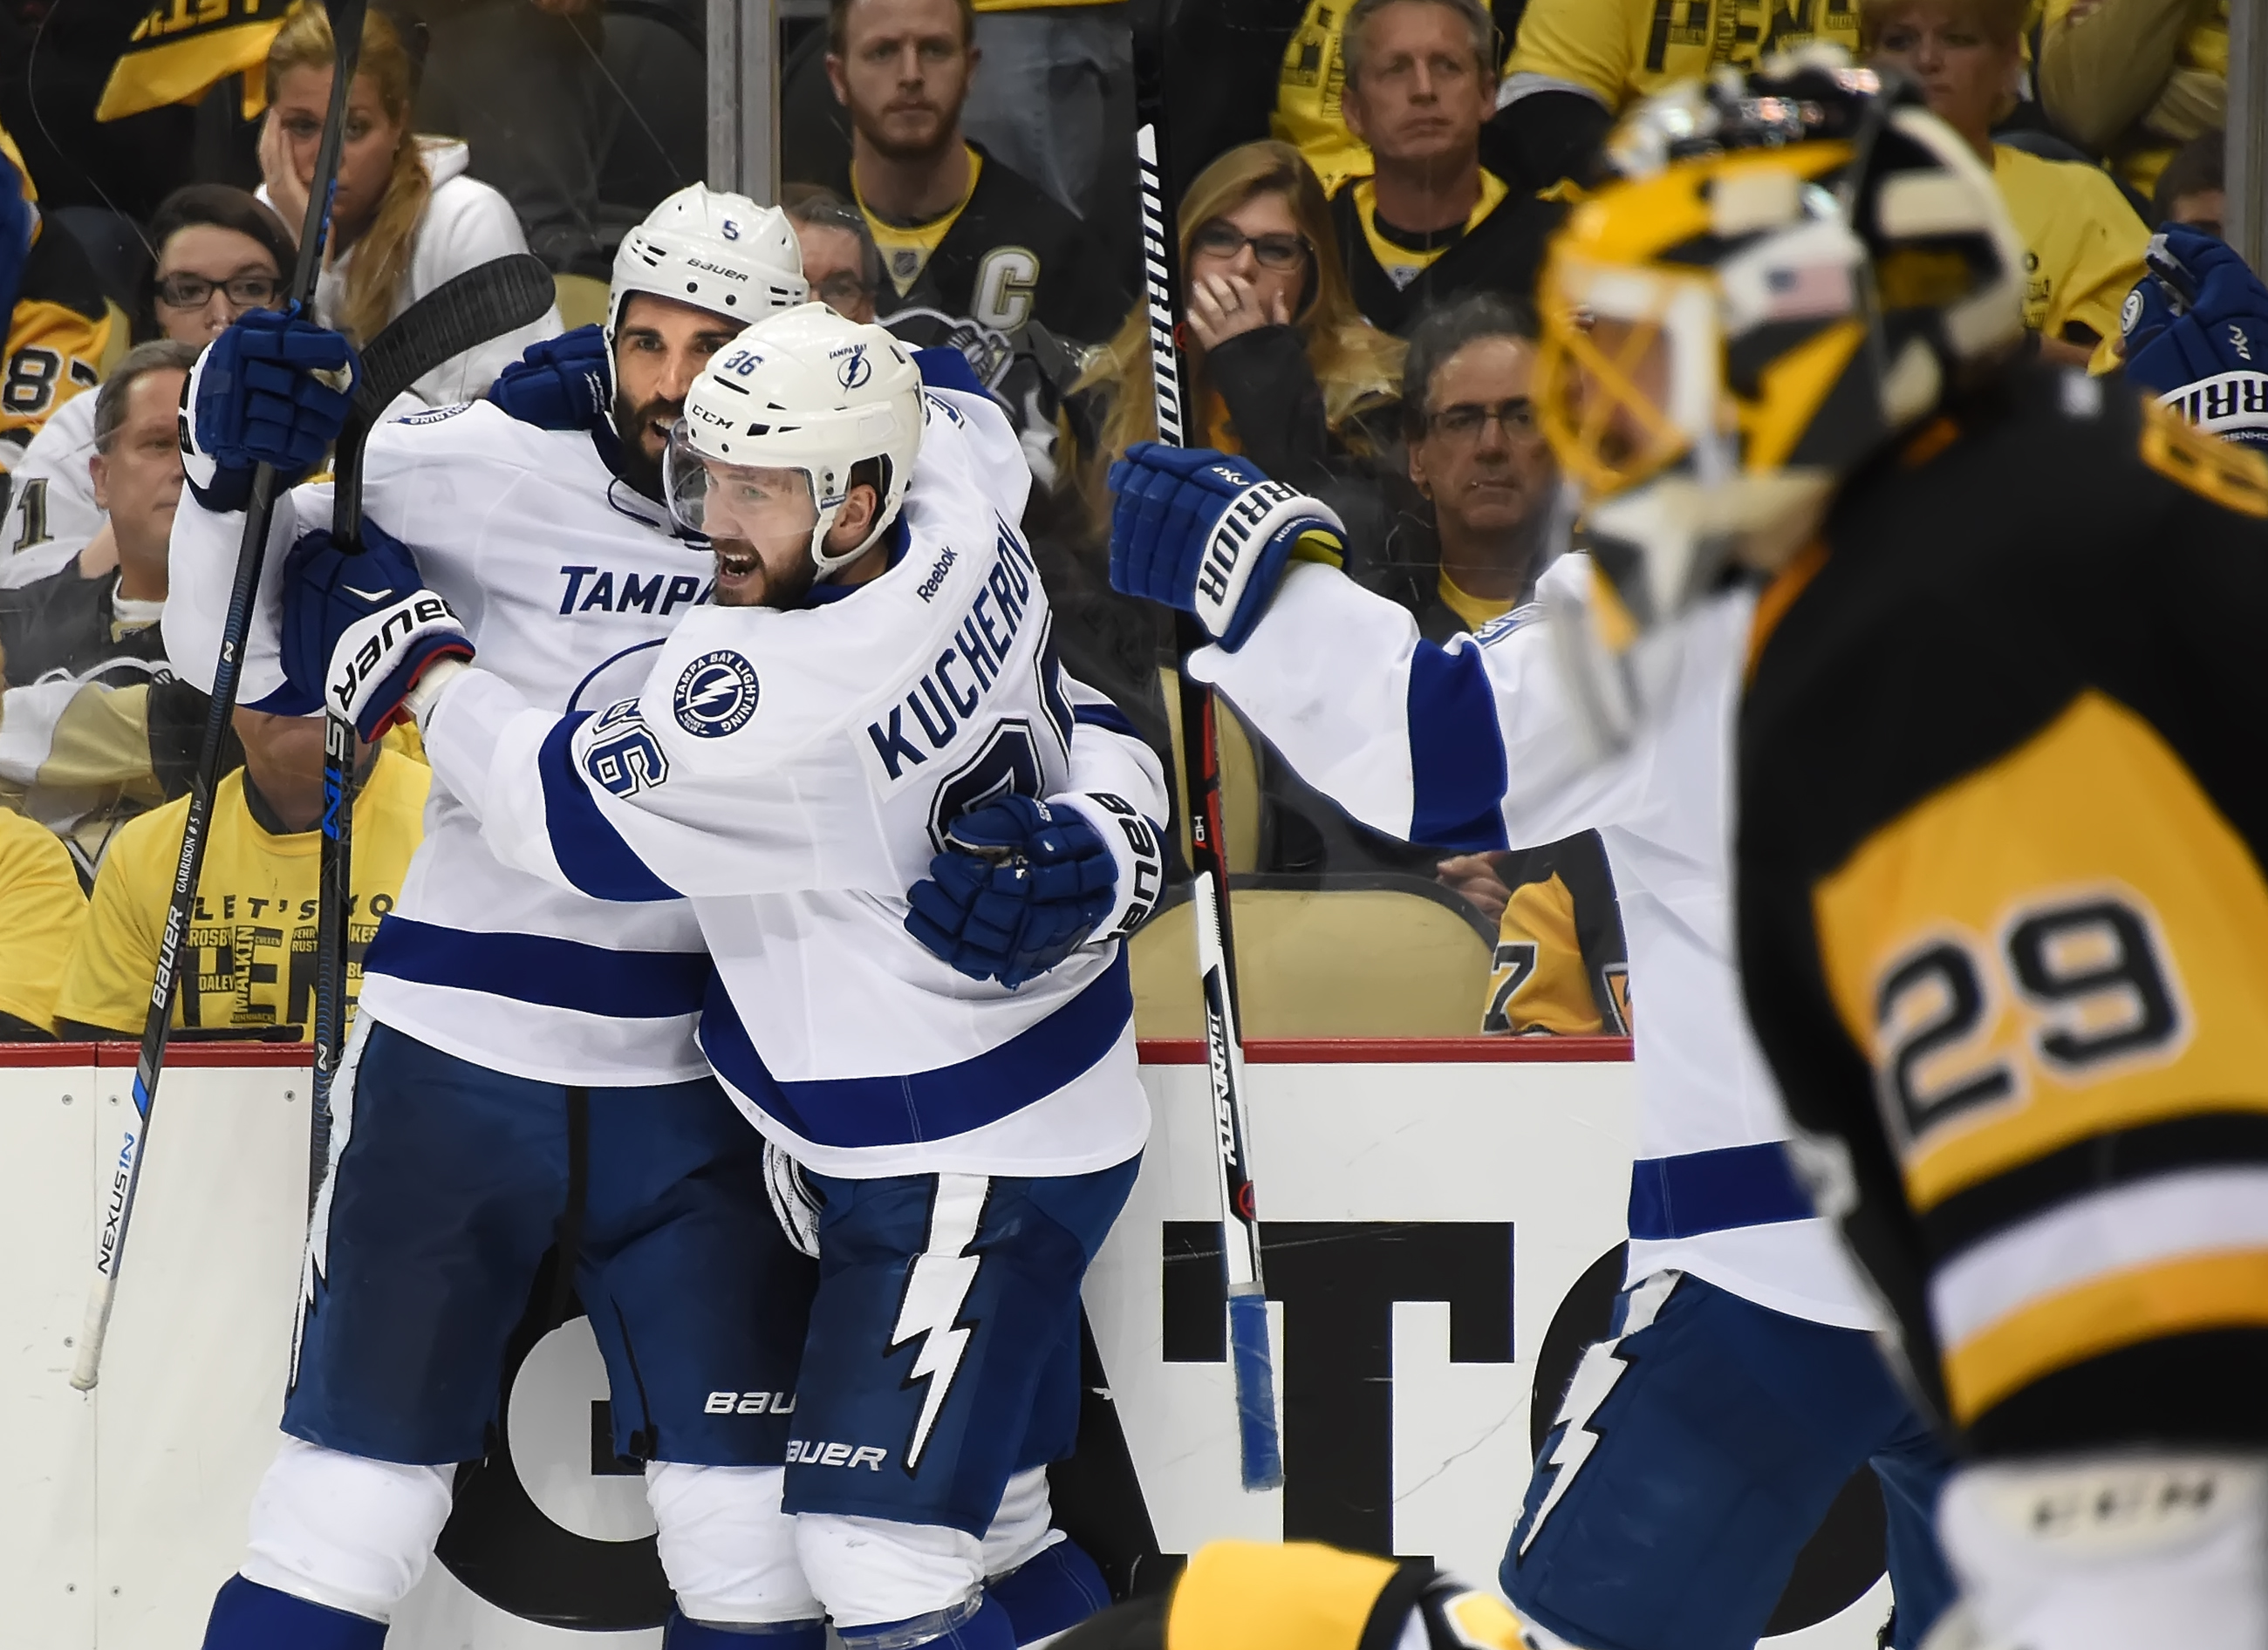 Penguins lose Game 5 to Lightning in overtime, 4-3 | Pittsburgh: In Focus